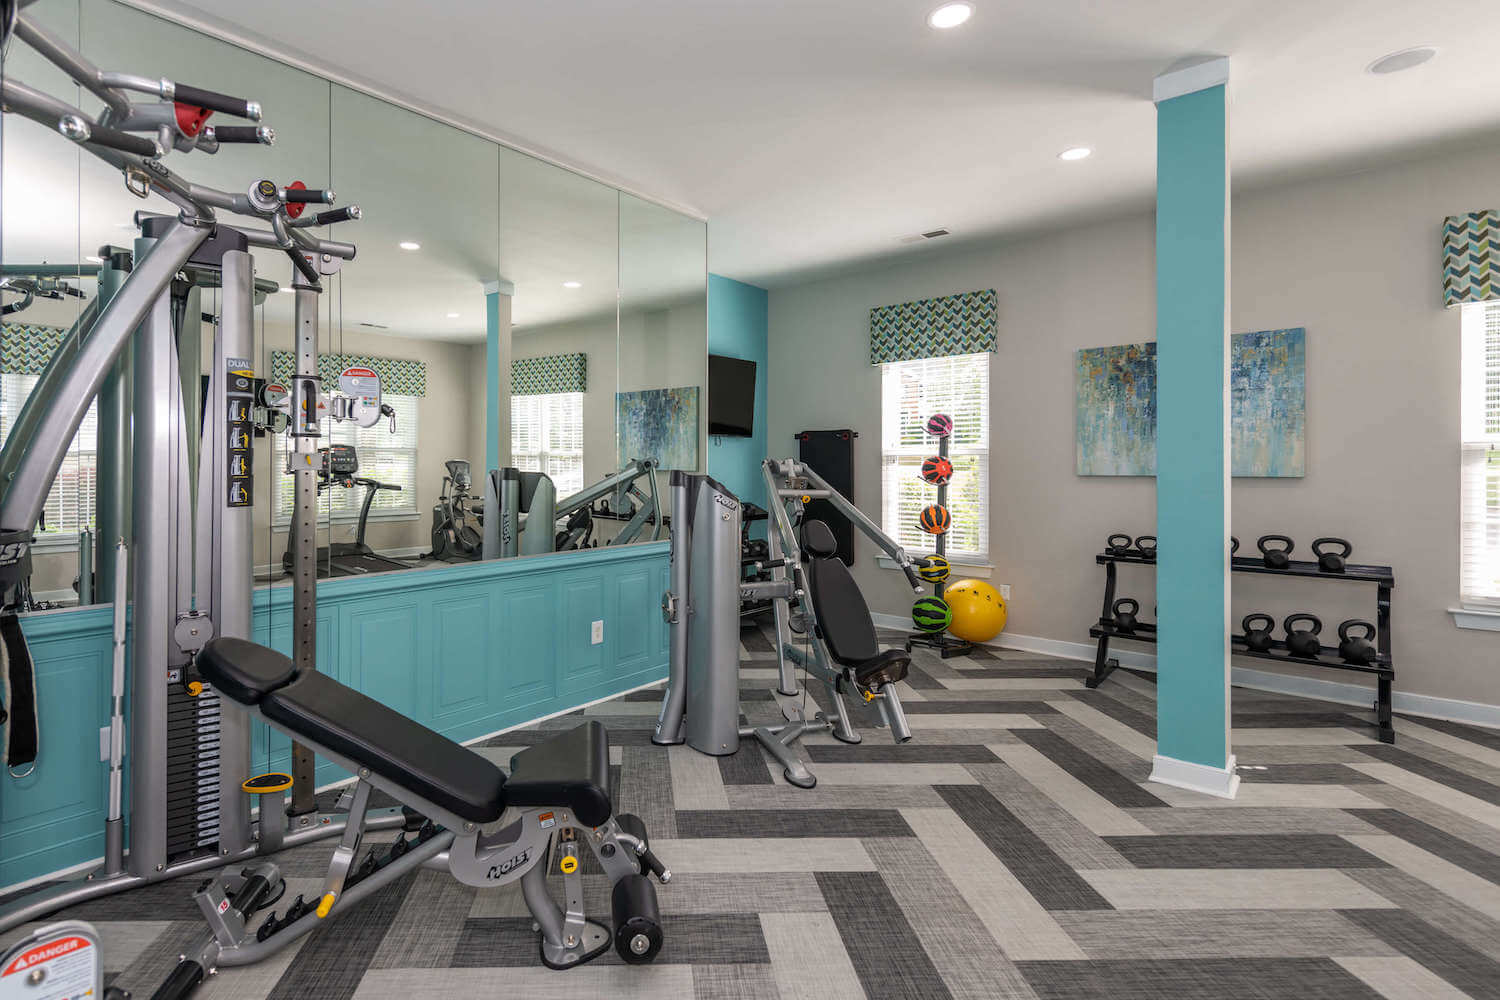 Fitness center with workout machines, free weights, and medicine balls.